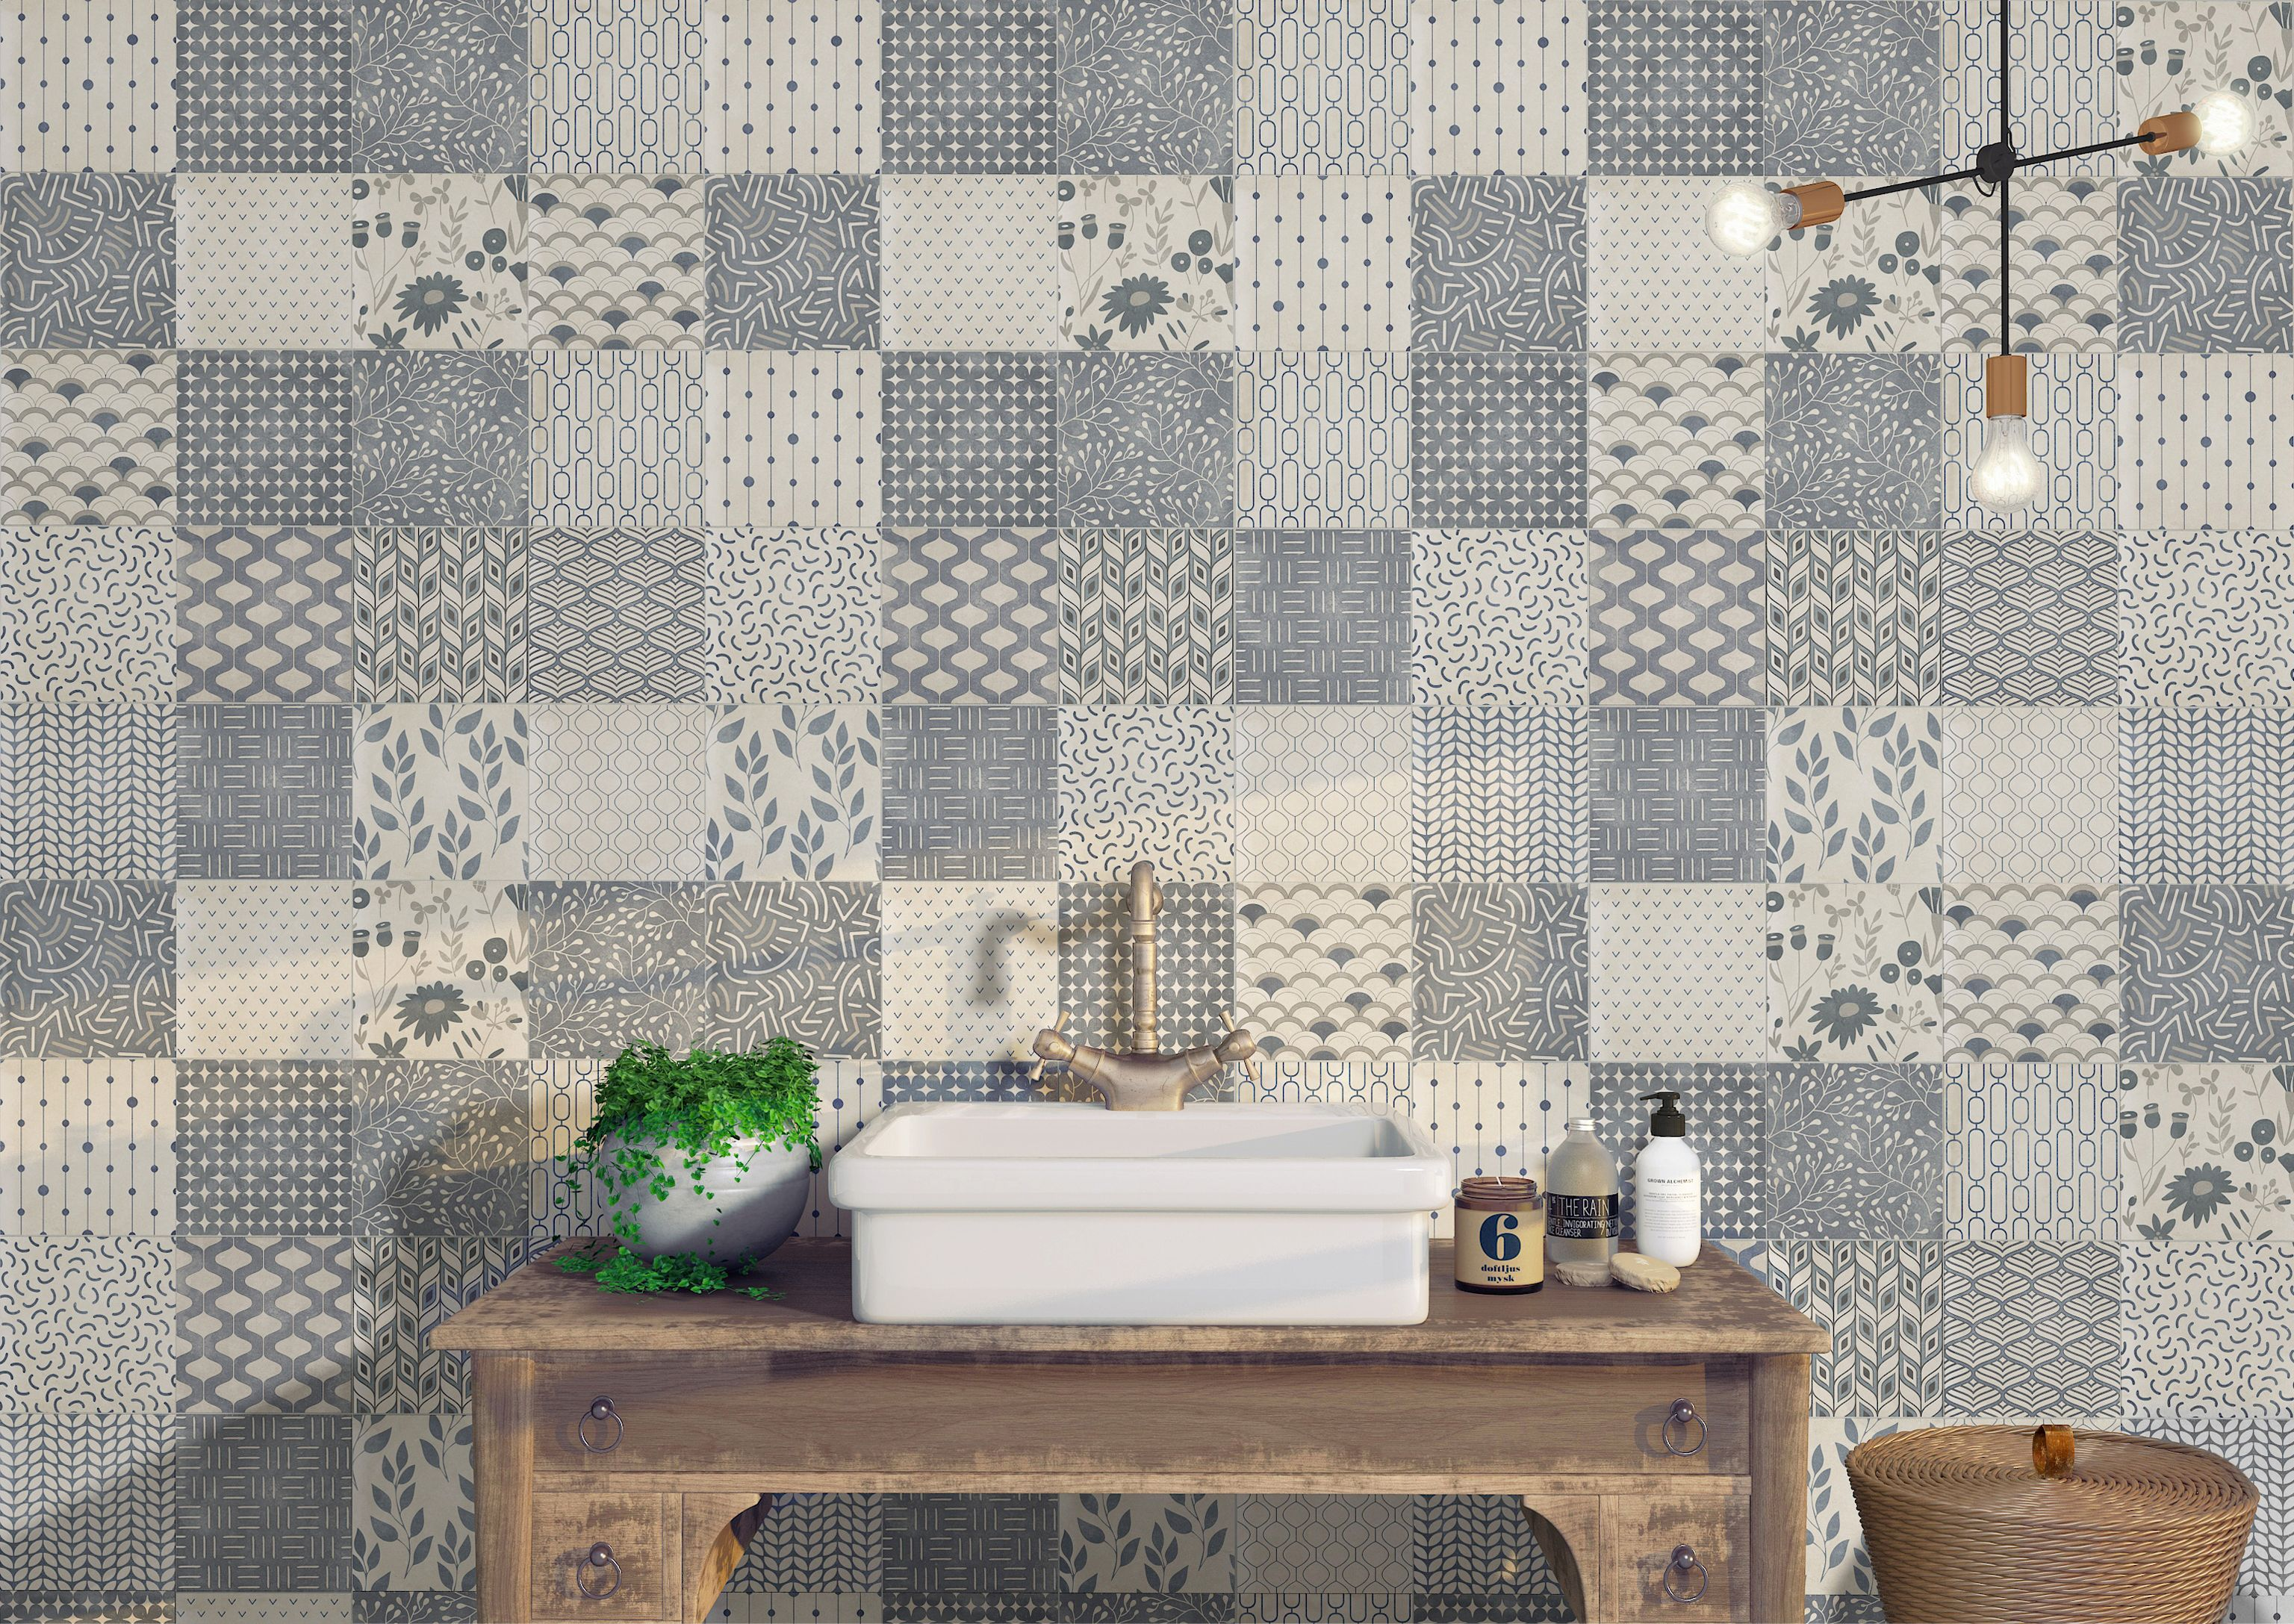 Home Decor Tiles The Design Evo Tile Collection#tiles #splashback #decor